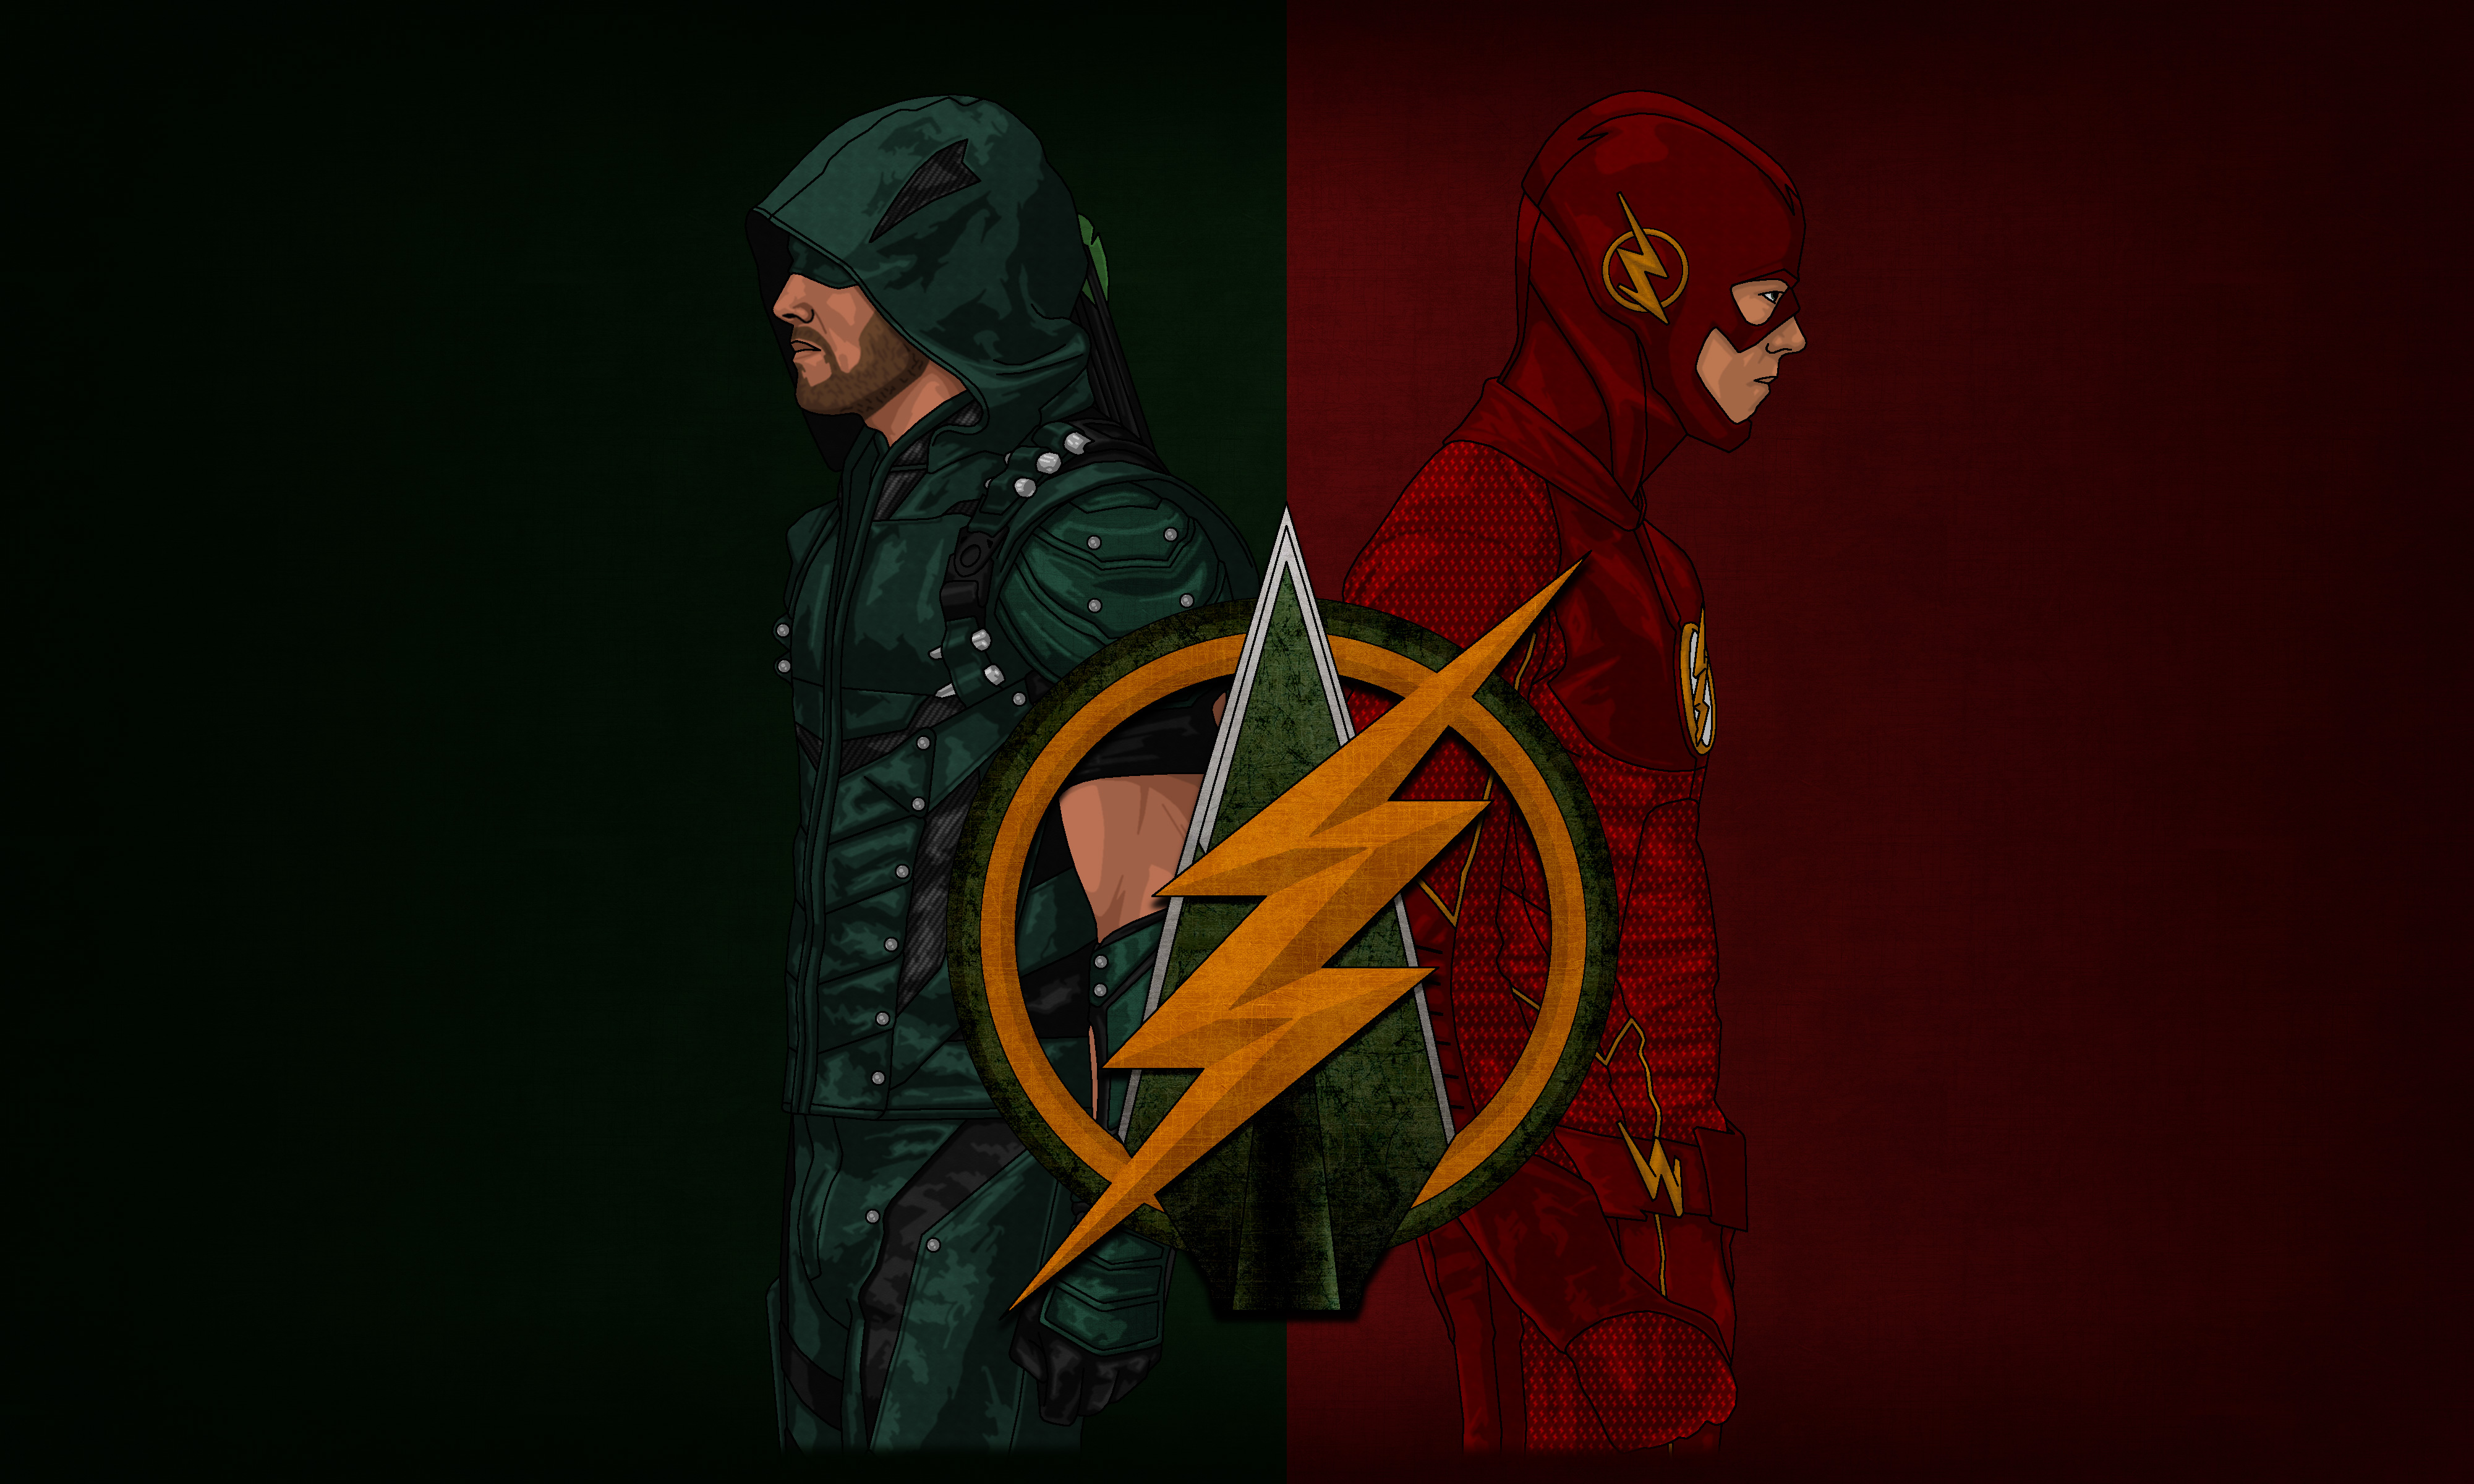 Arrow Flash Artwork 4k Hd Tv Shows 4k Wallpapers Images